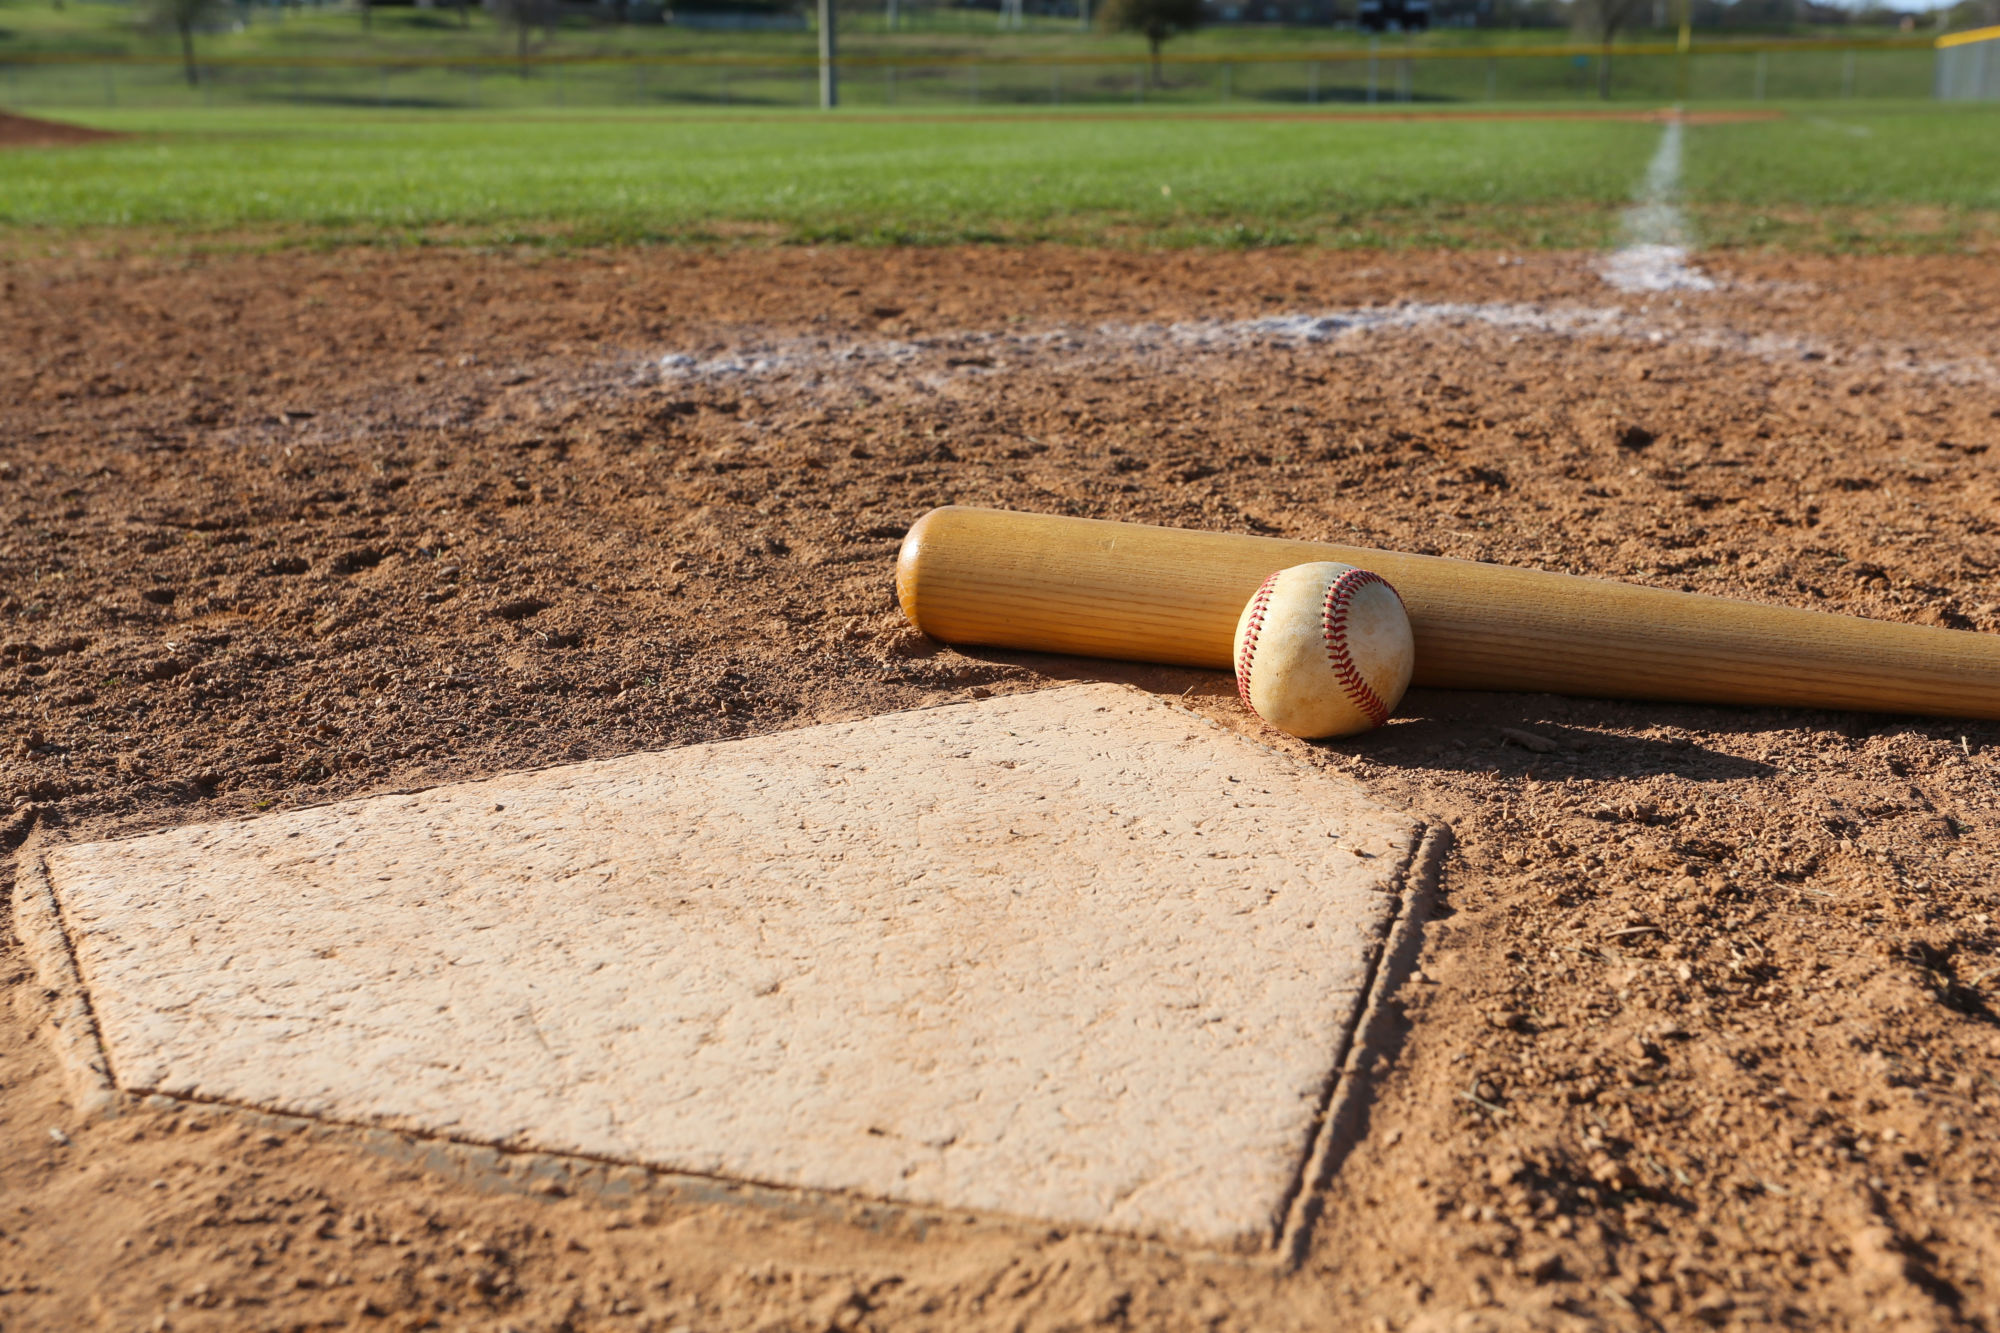 Baseball, Bat, and Home Plate -- David Lee/Shutterstock.com